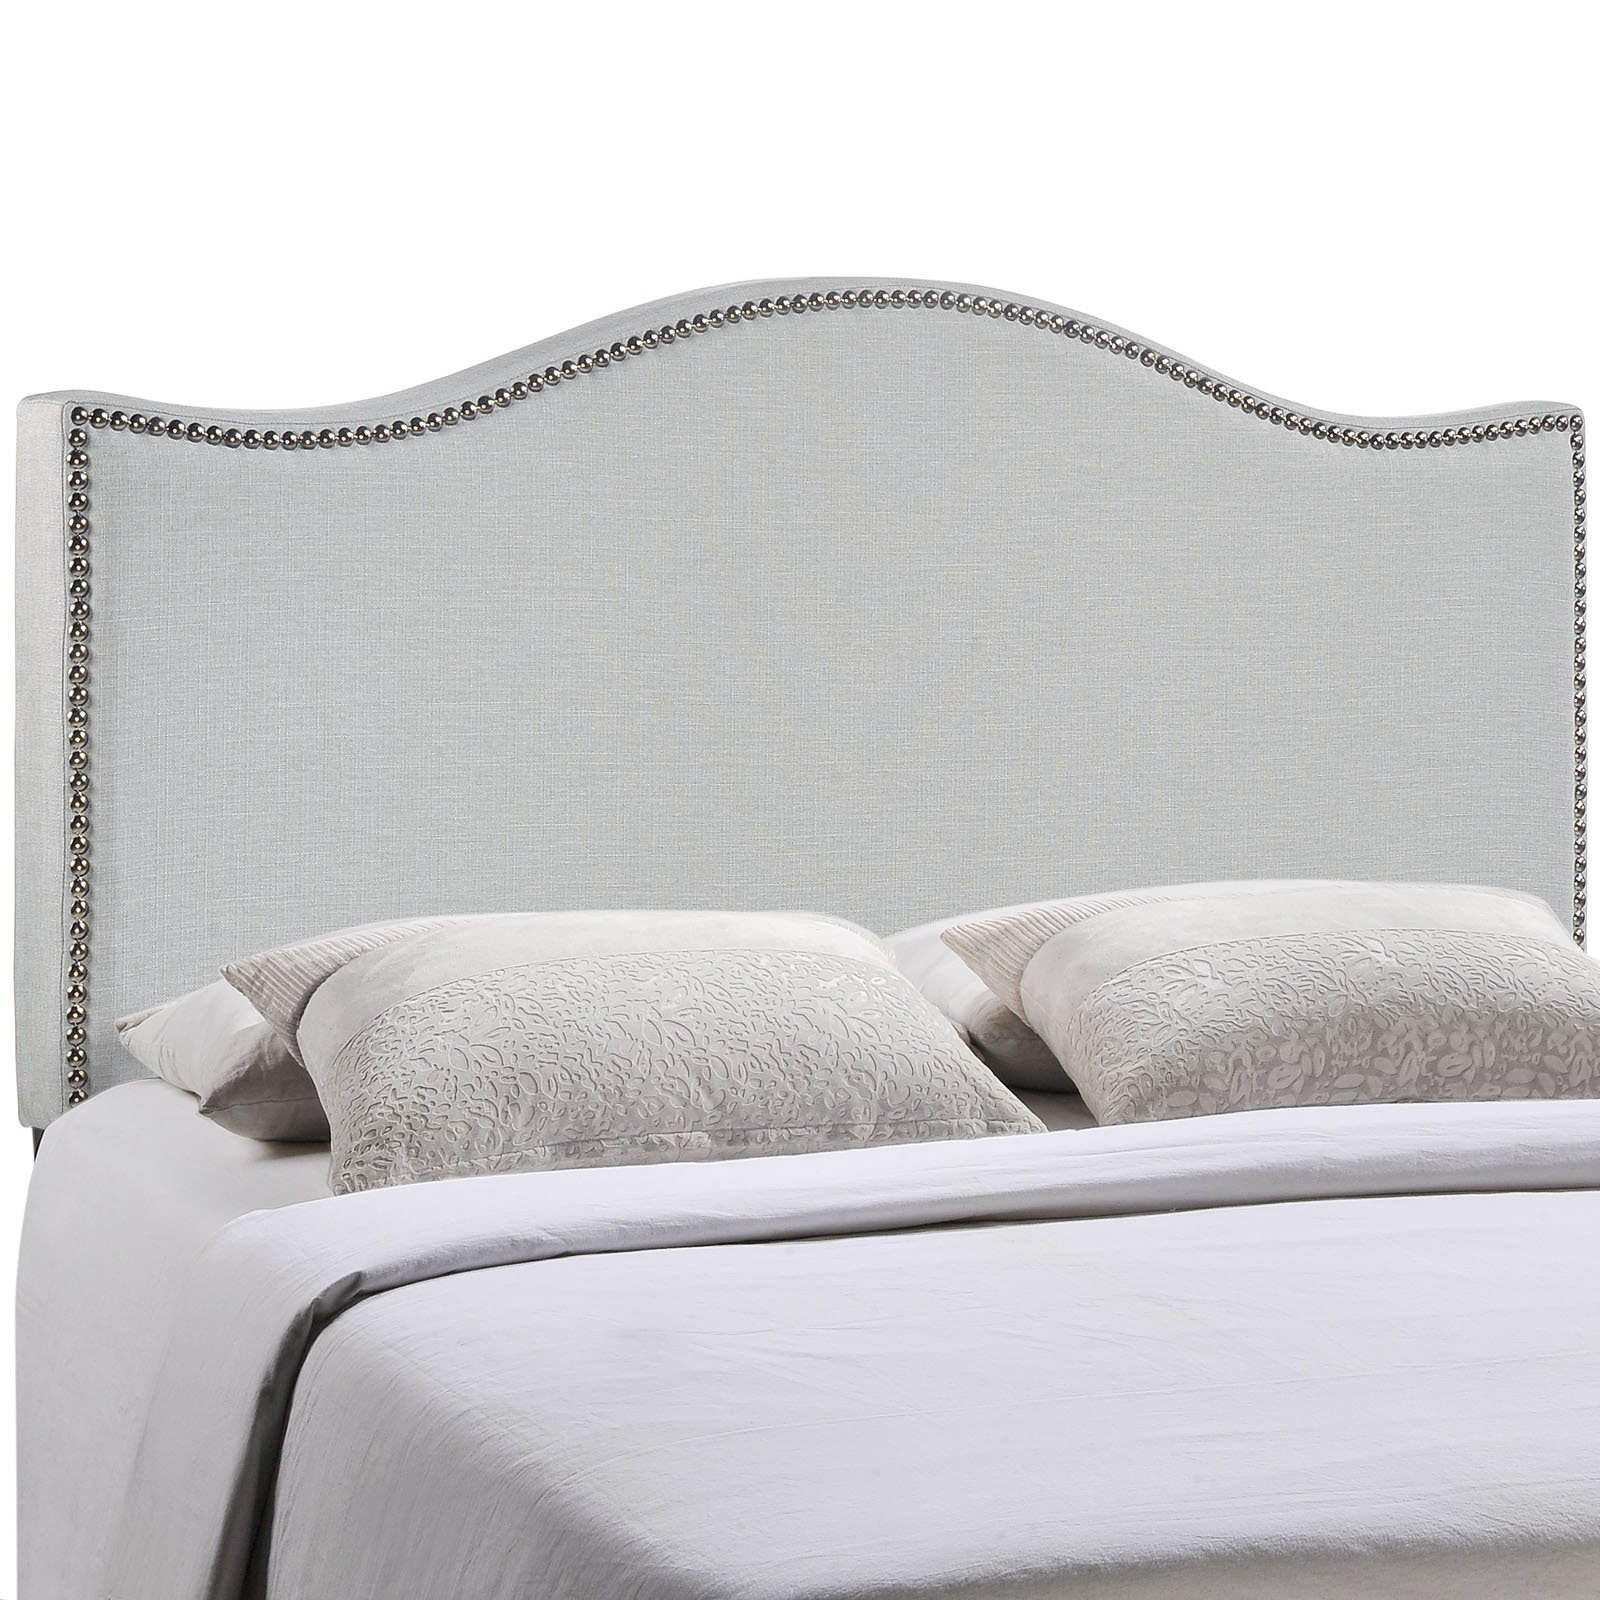 Modway Curl Linen Fabric Upholstered King Headboard with Nailhead Trim and Curved Shape in Gray by Modway